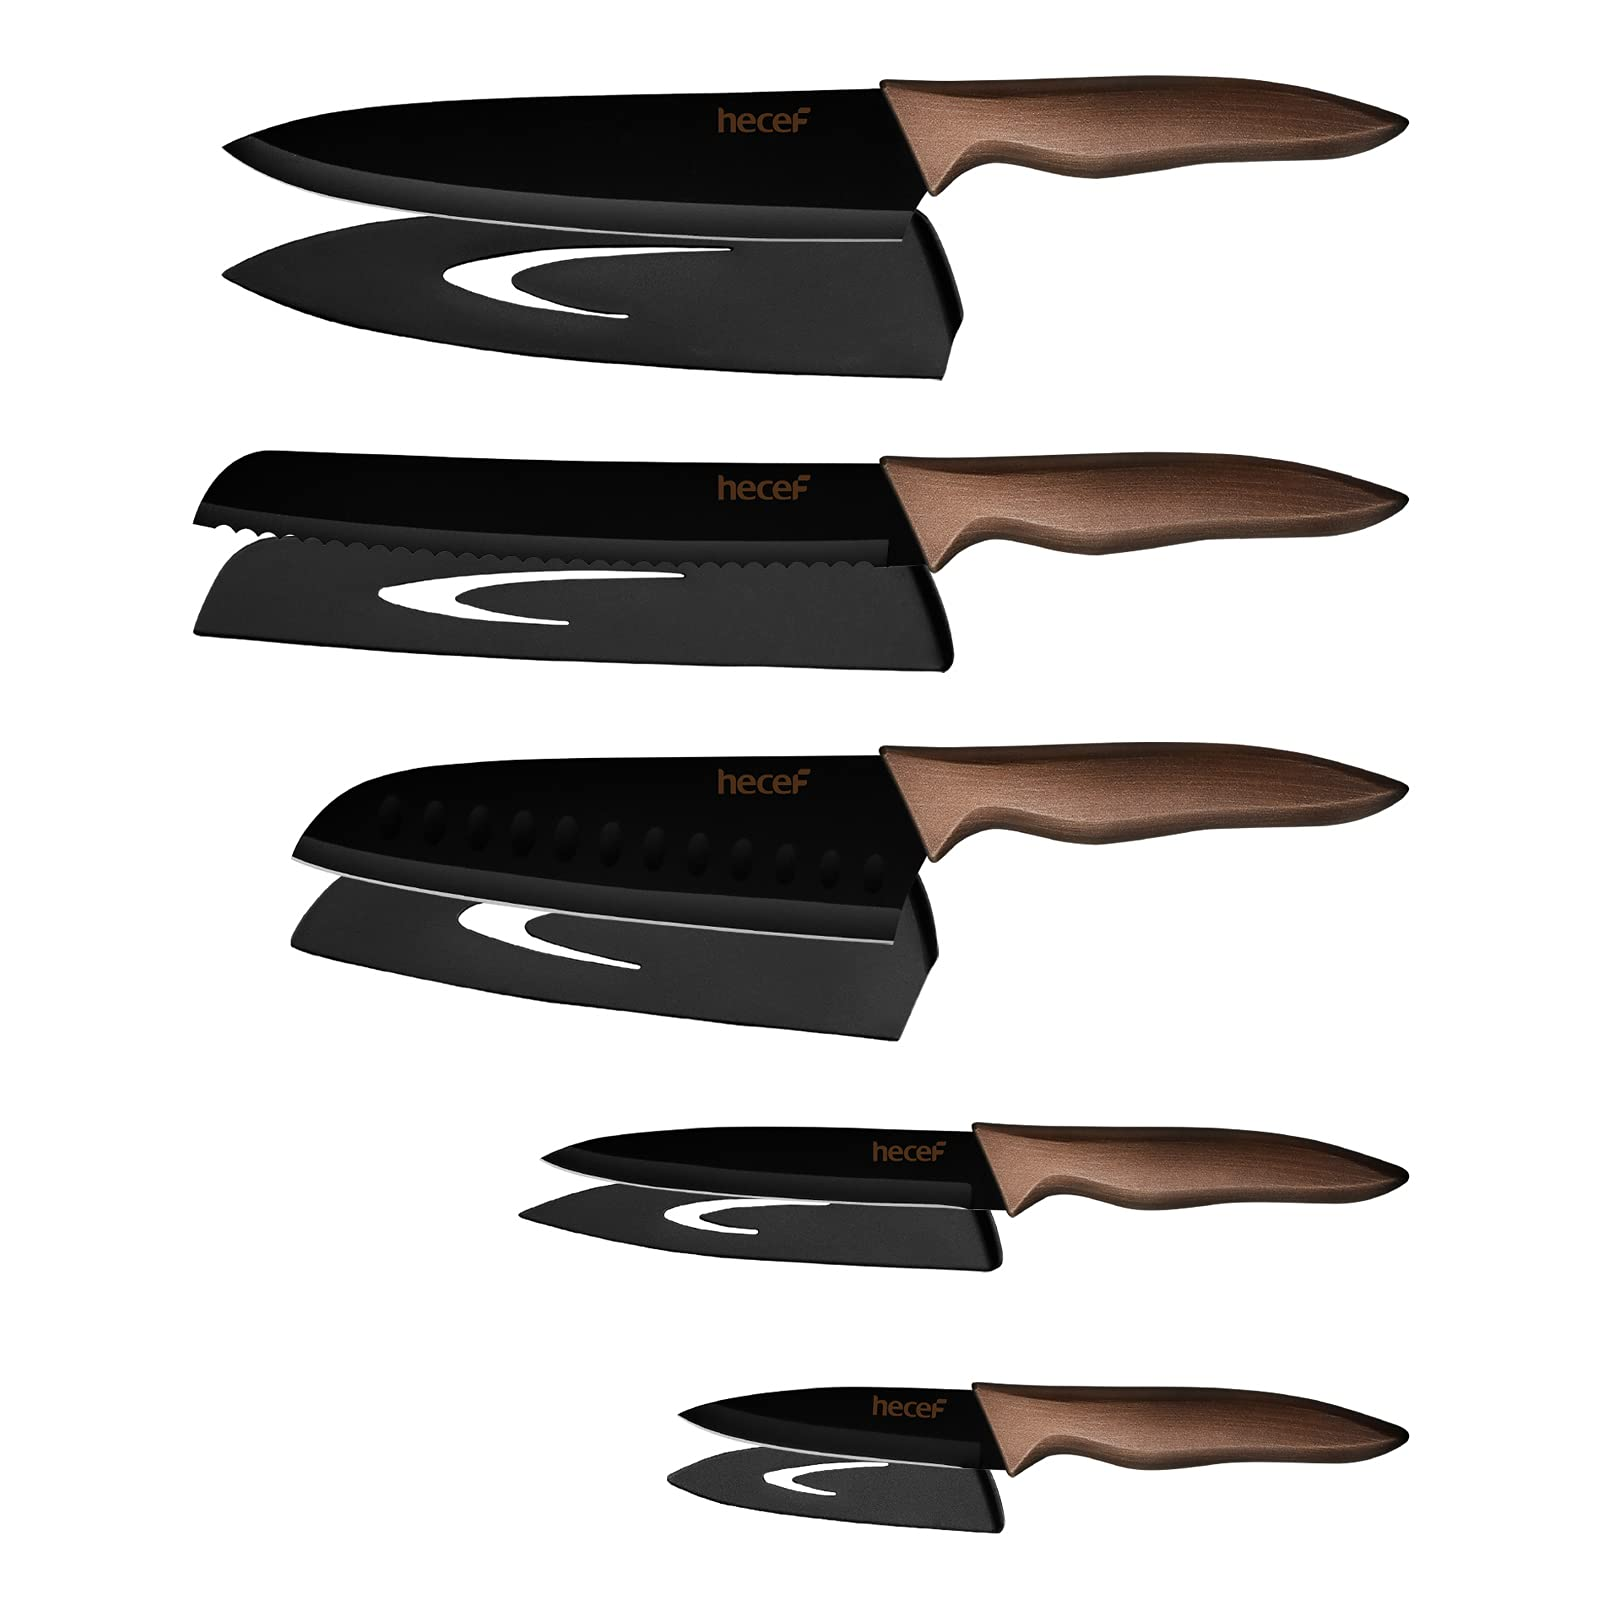 hecef Kitchen Knife Set,Stainless Steel Super Sharp Blade Chef Knife Set with Black Color Coating,Includes Chef,Bread,Santoku,Utility and Paring Knife with 5 Extra Matching Blade Guards